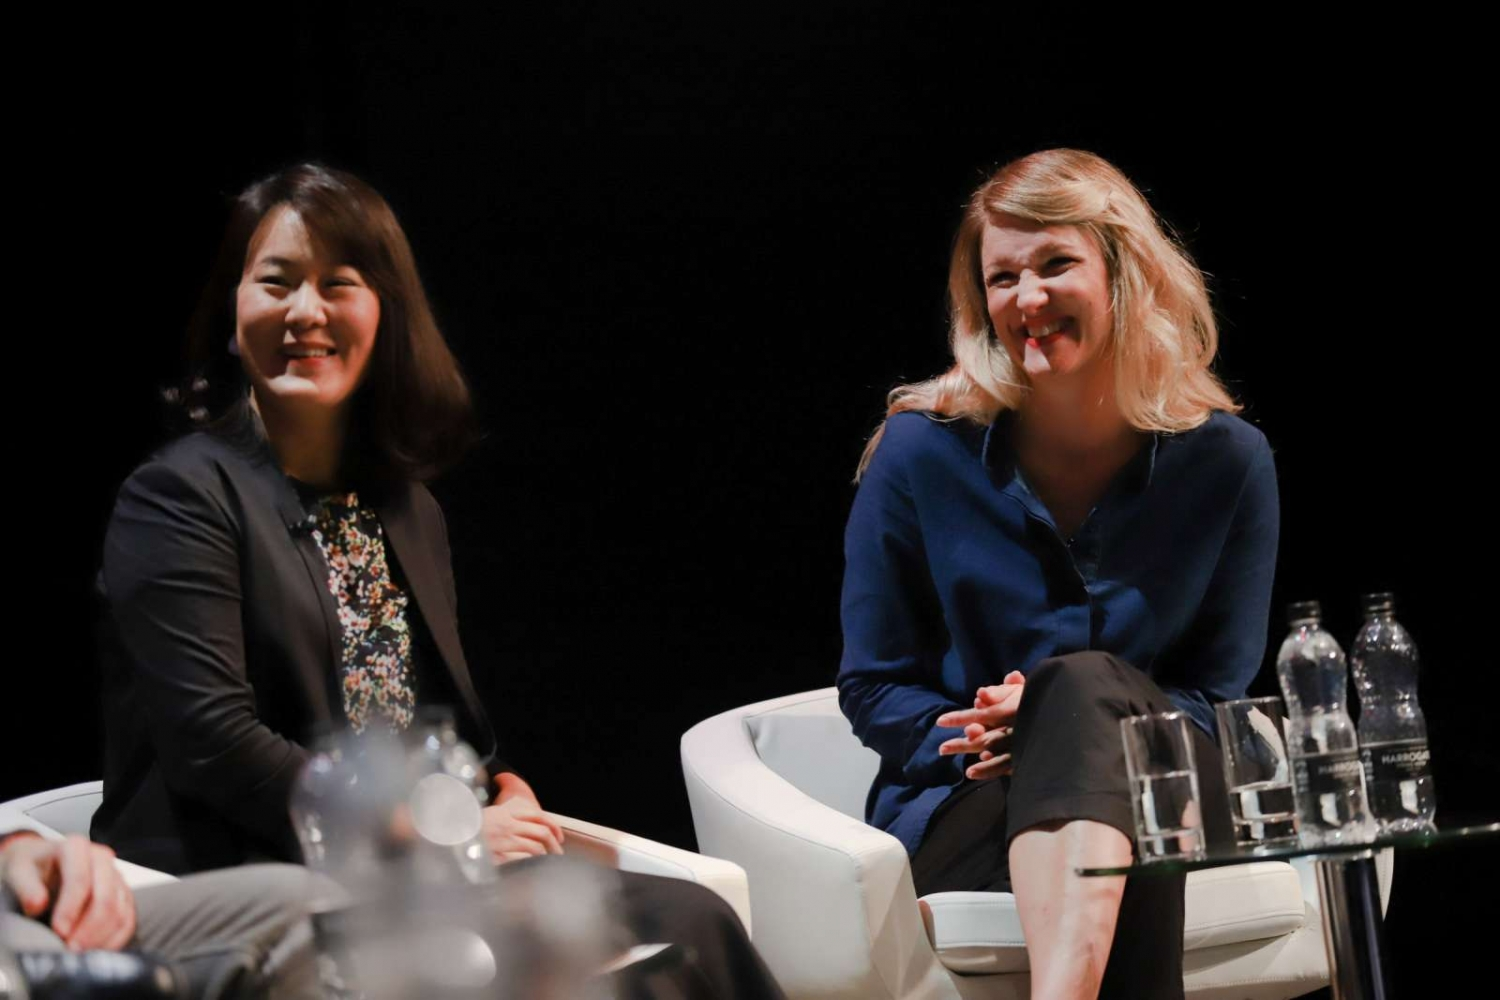 Women and Machine - Yihyun Lim (left) and Dr Matilda Andersson